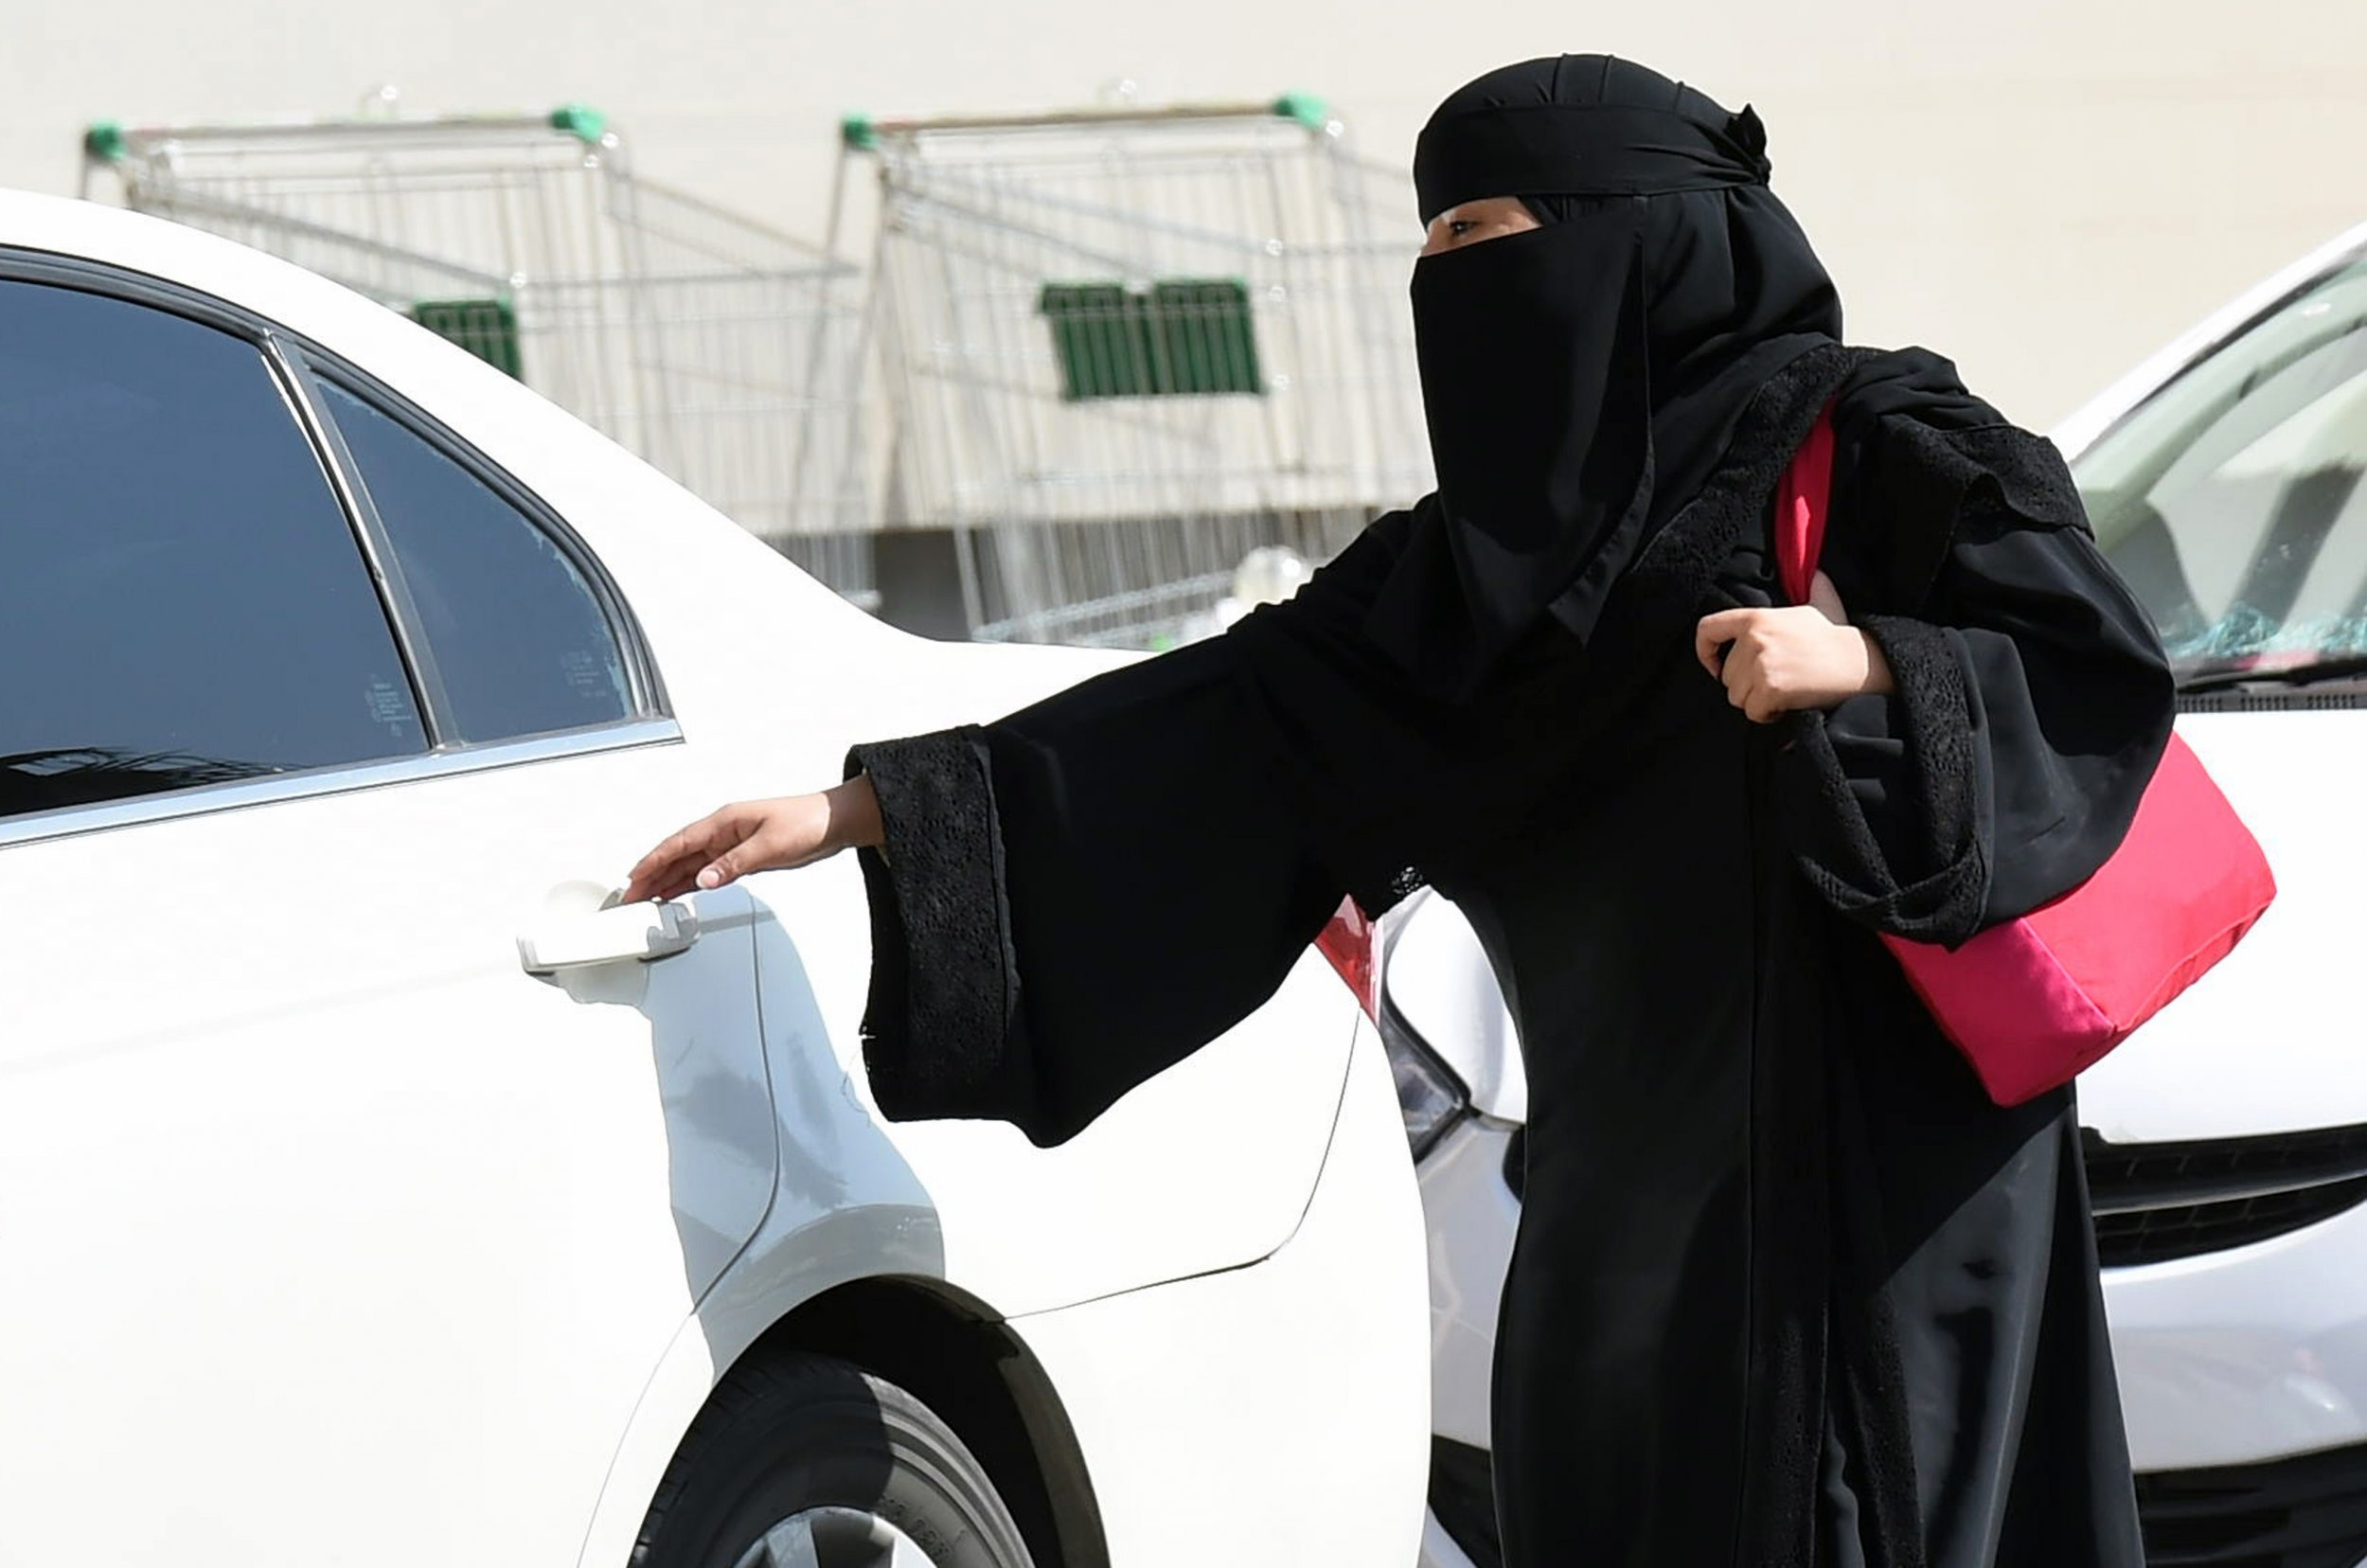 Saudi preacher banned for saying women drivers have quarter the brain of men